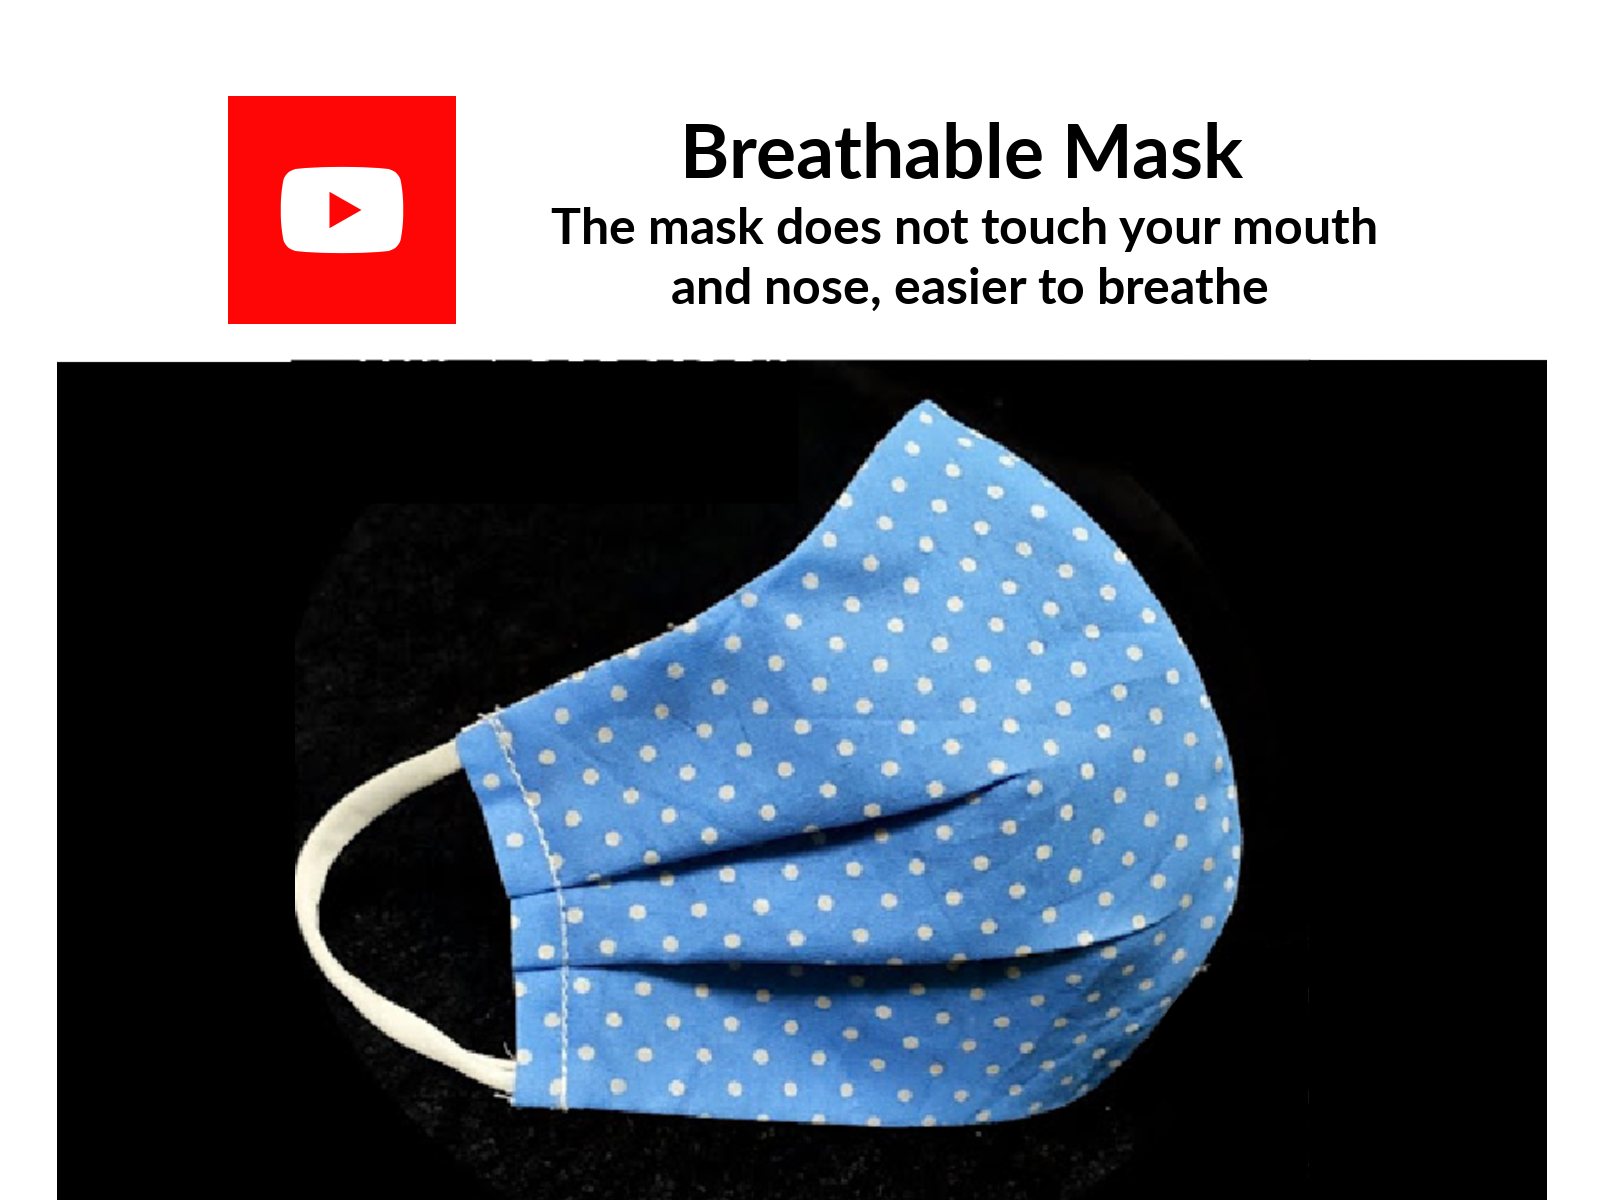 Breathable Mask  The mask does not touch your mouth and nose, easier to breathe